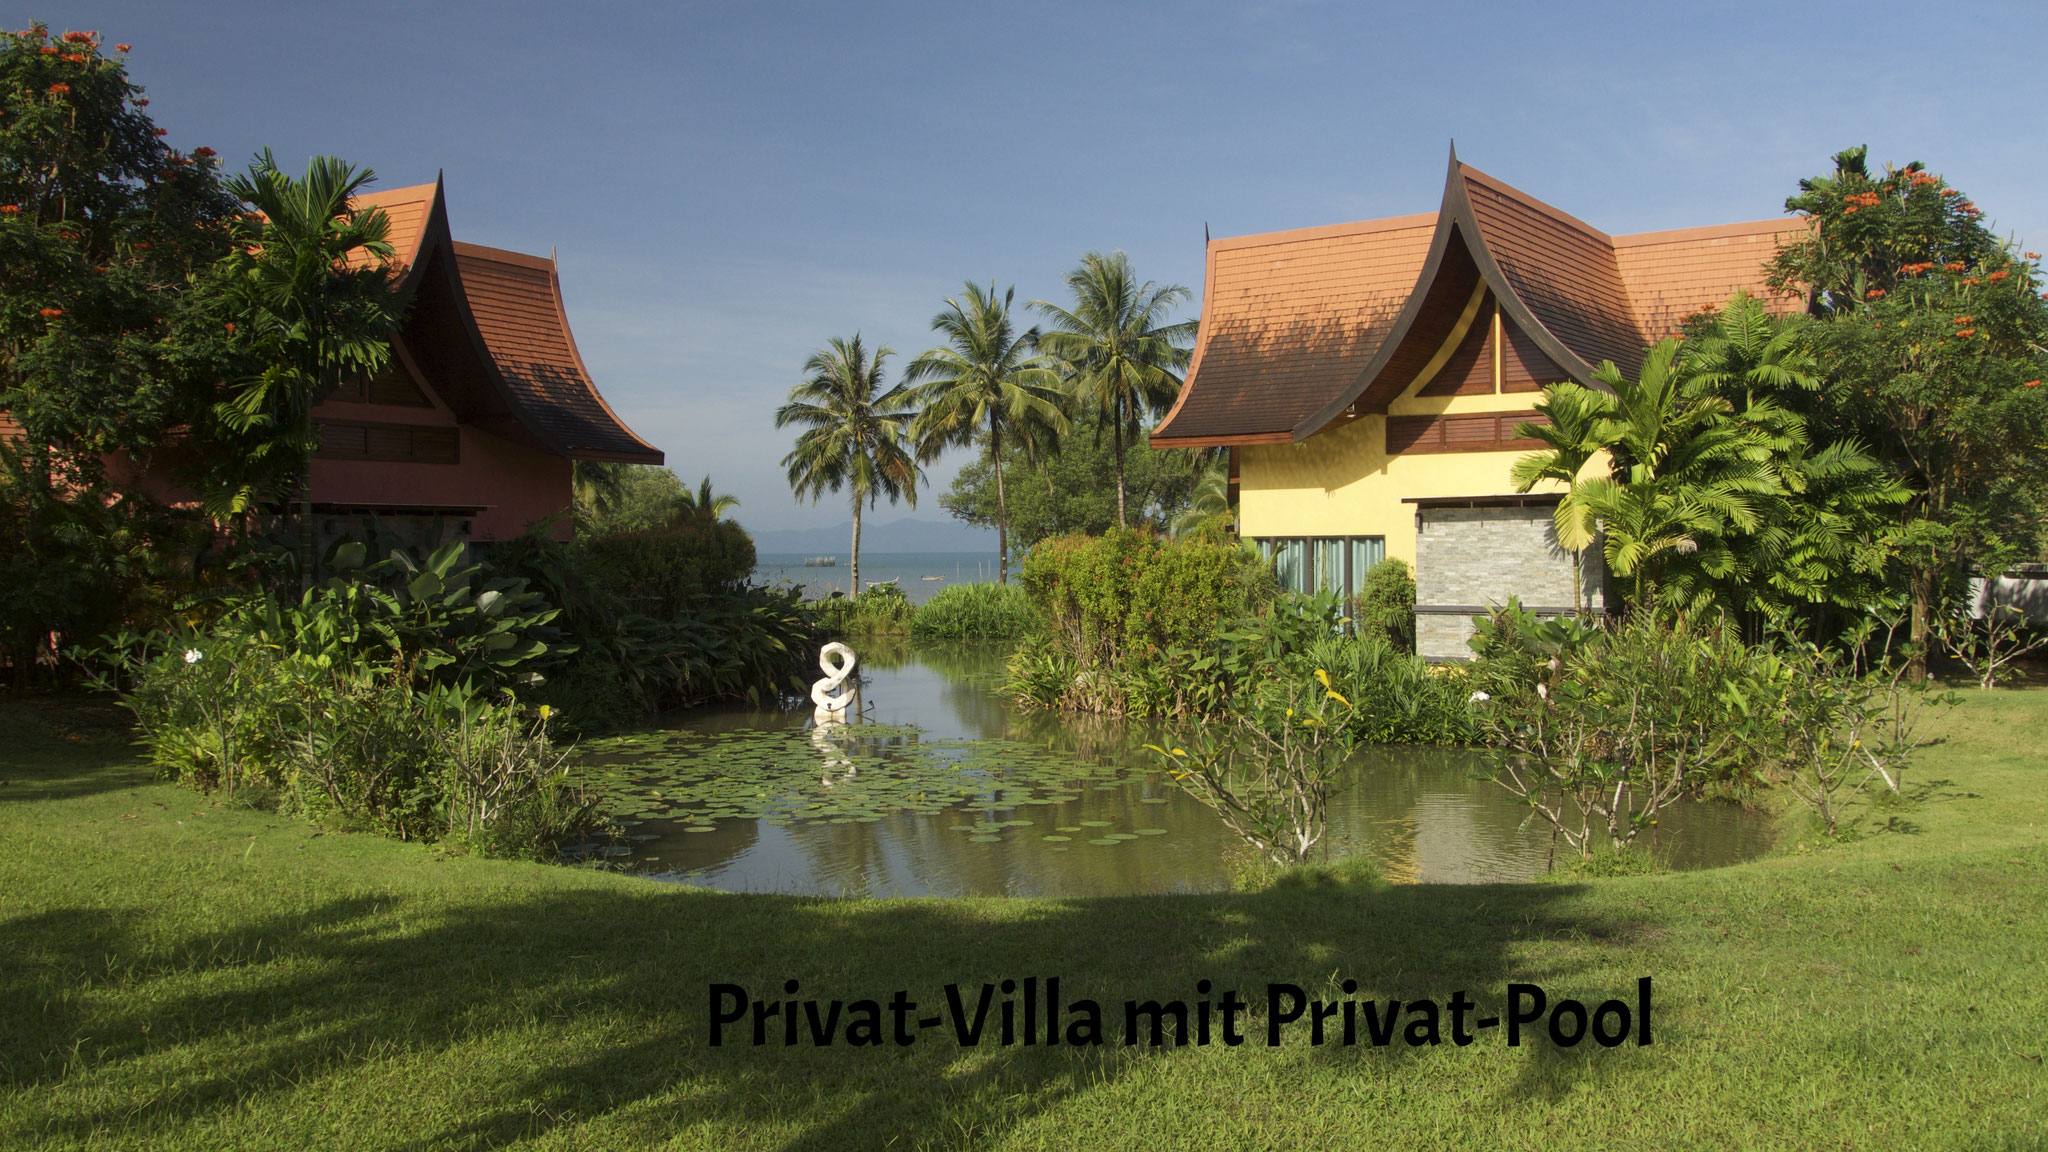 Privat-Villa mit Privat-Pool